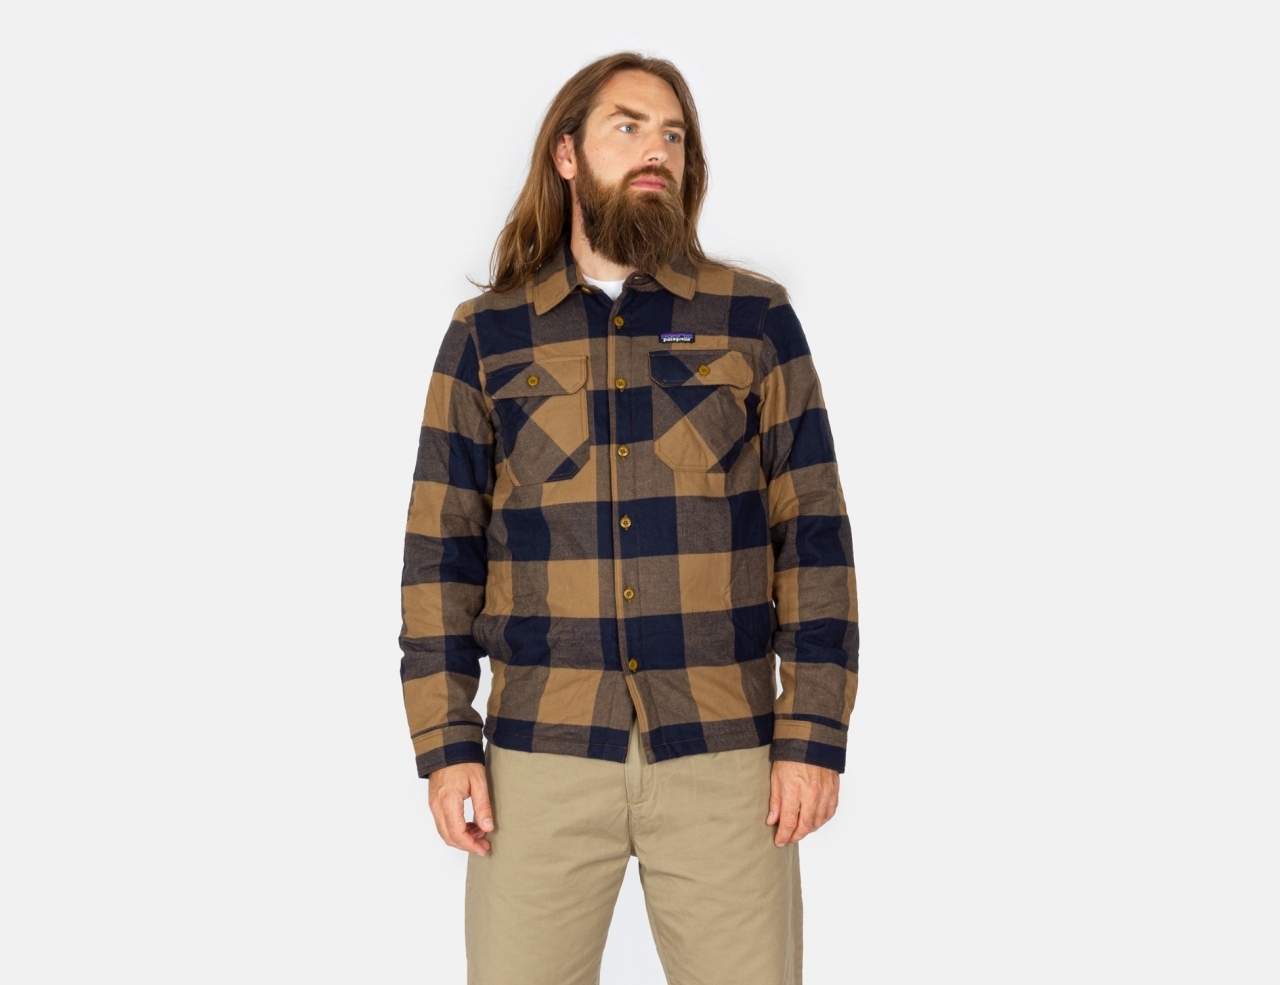 Patagonia Insulated MW Fjord Flannel Shirt - Mountain Plaid: Timber Brown